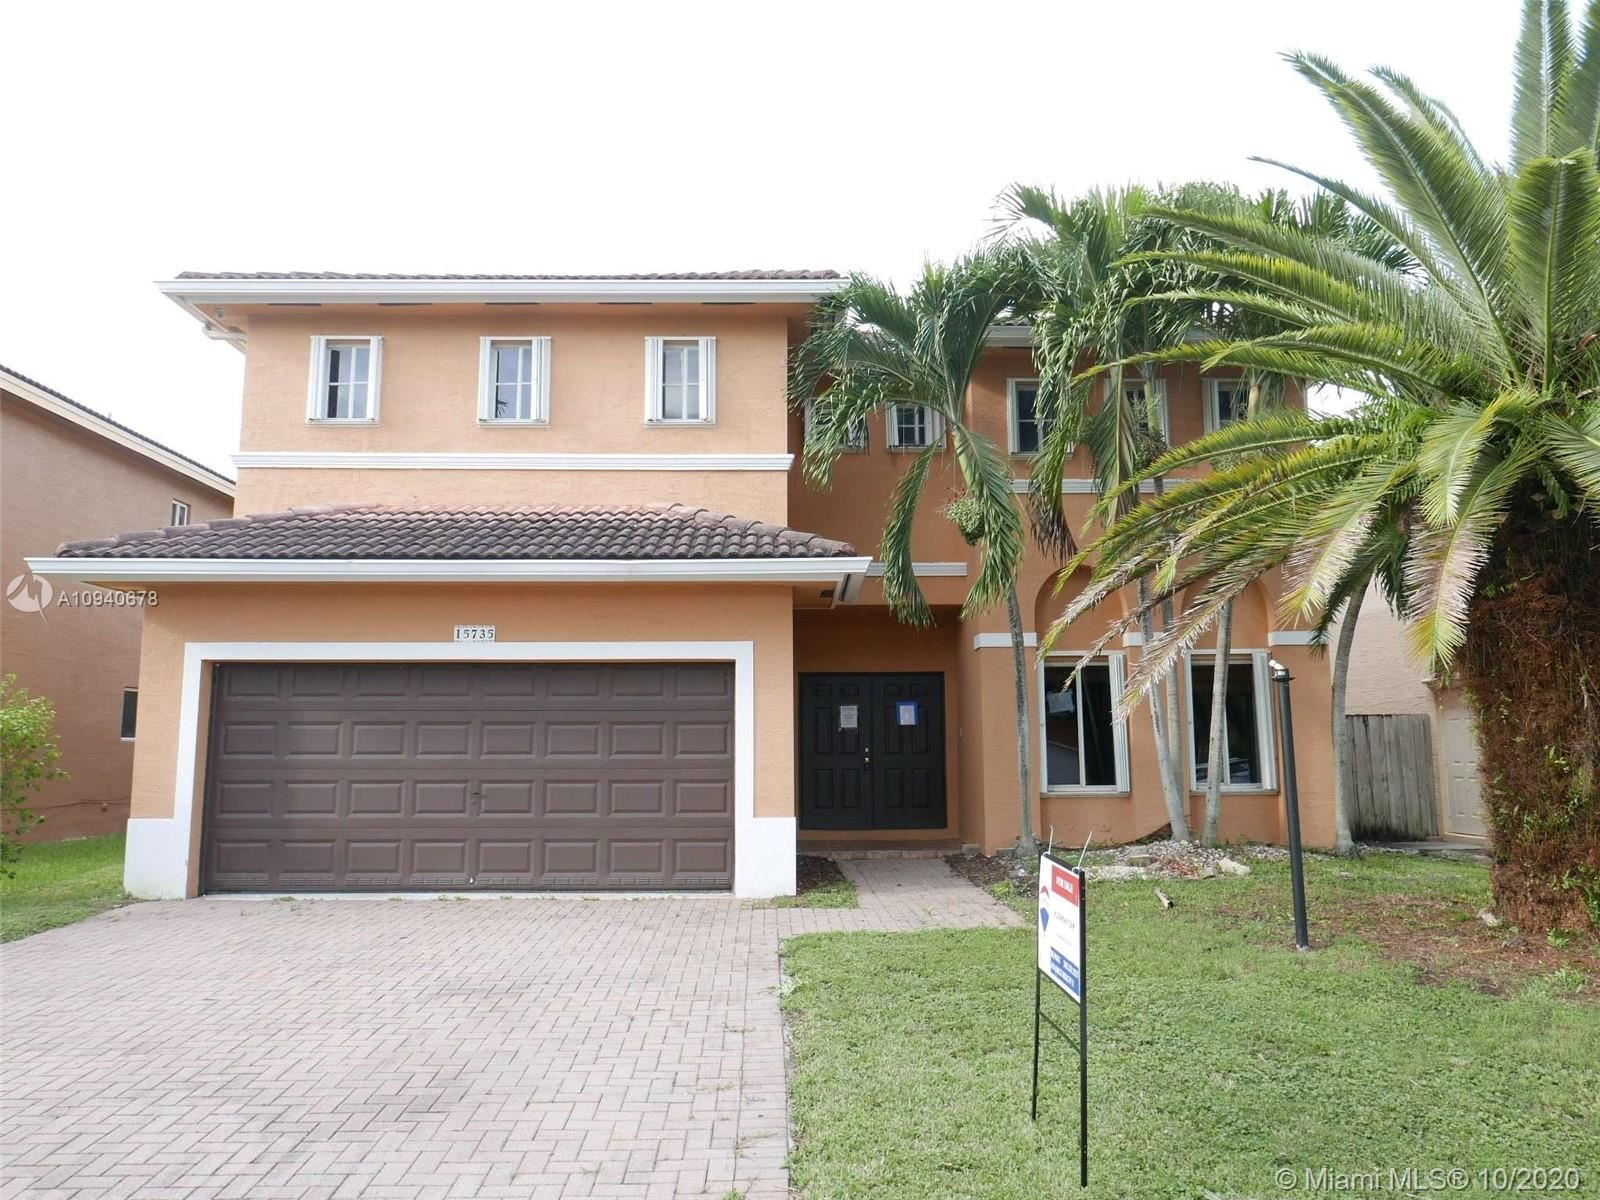 15735 SW 145th Ter, Miami, FL 33196 - #: A10940678